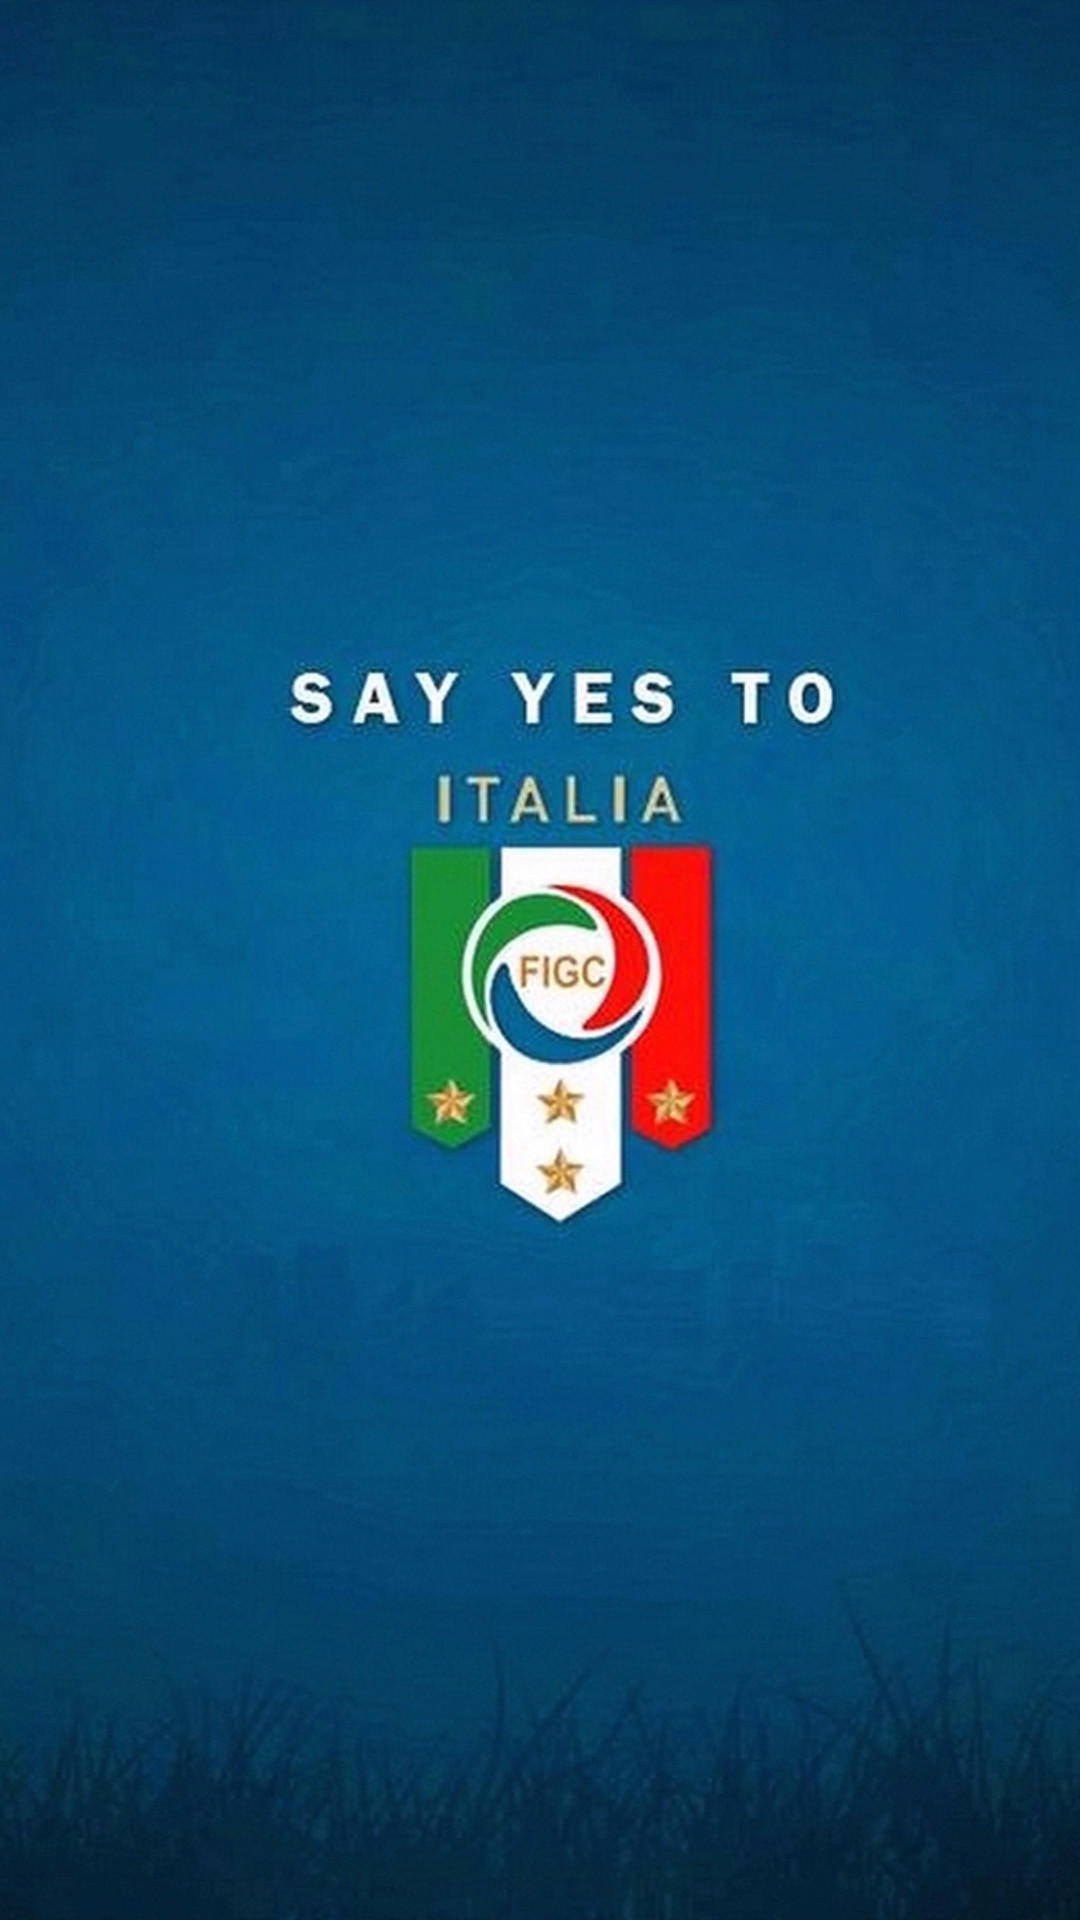 1080x1920 SAY YES TO ITALIA Htc One M8